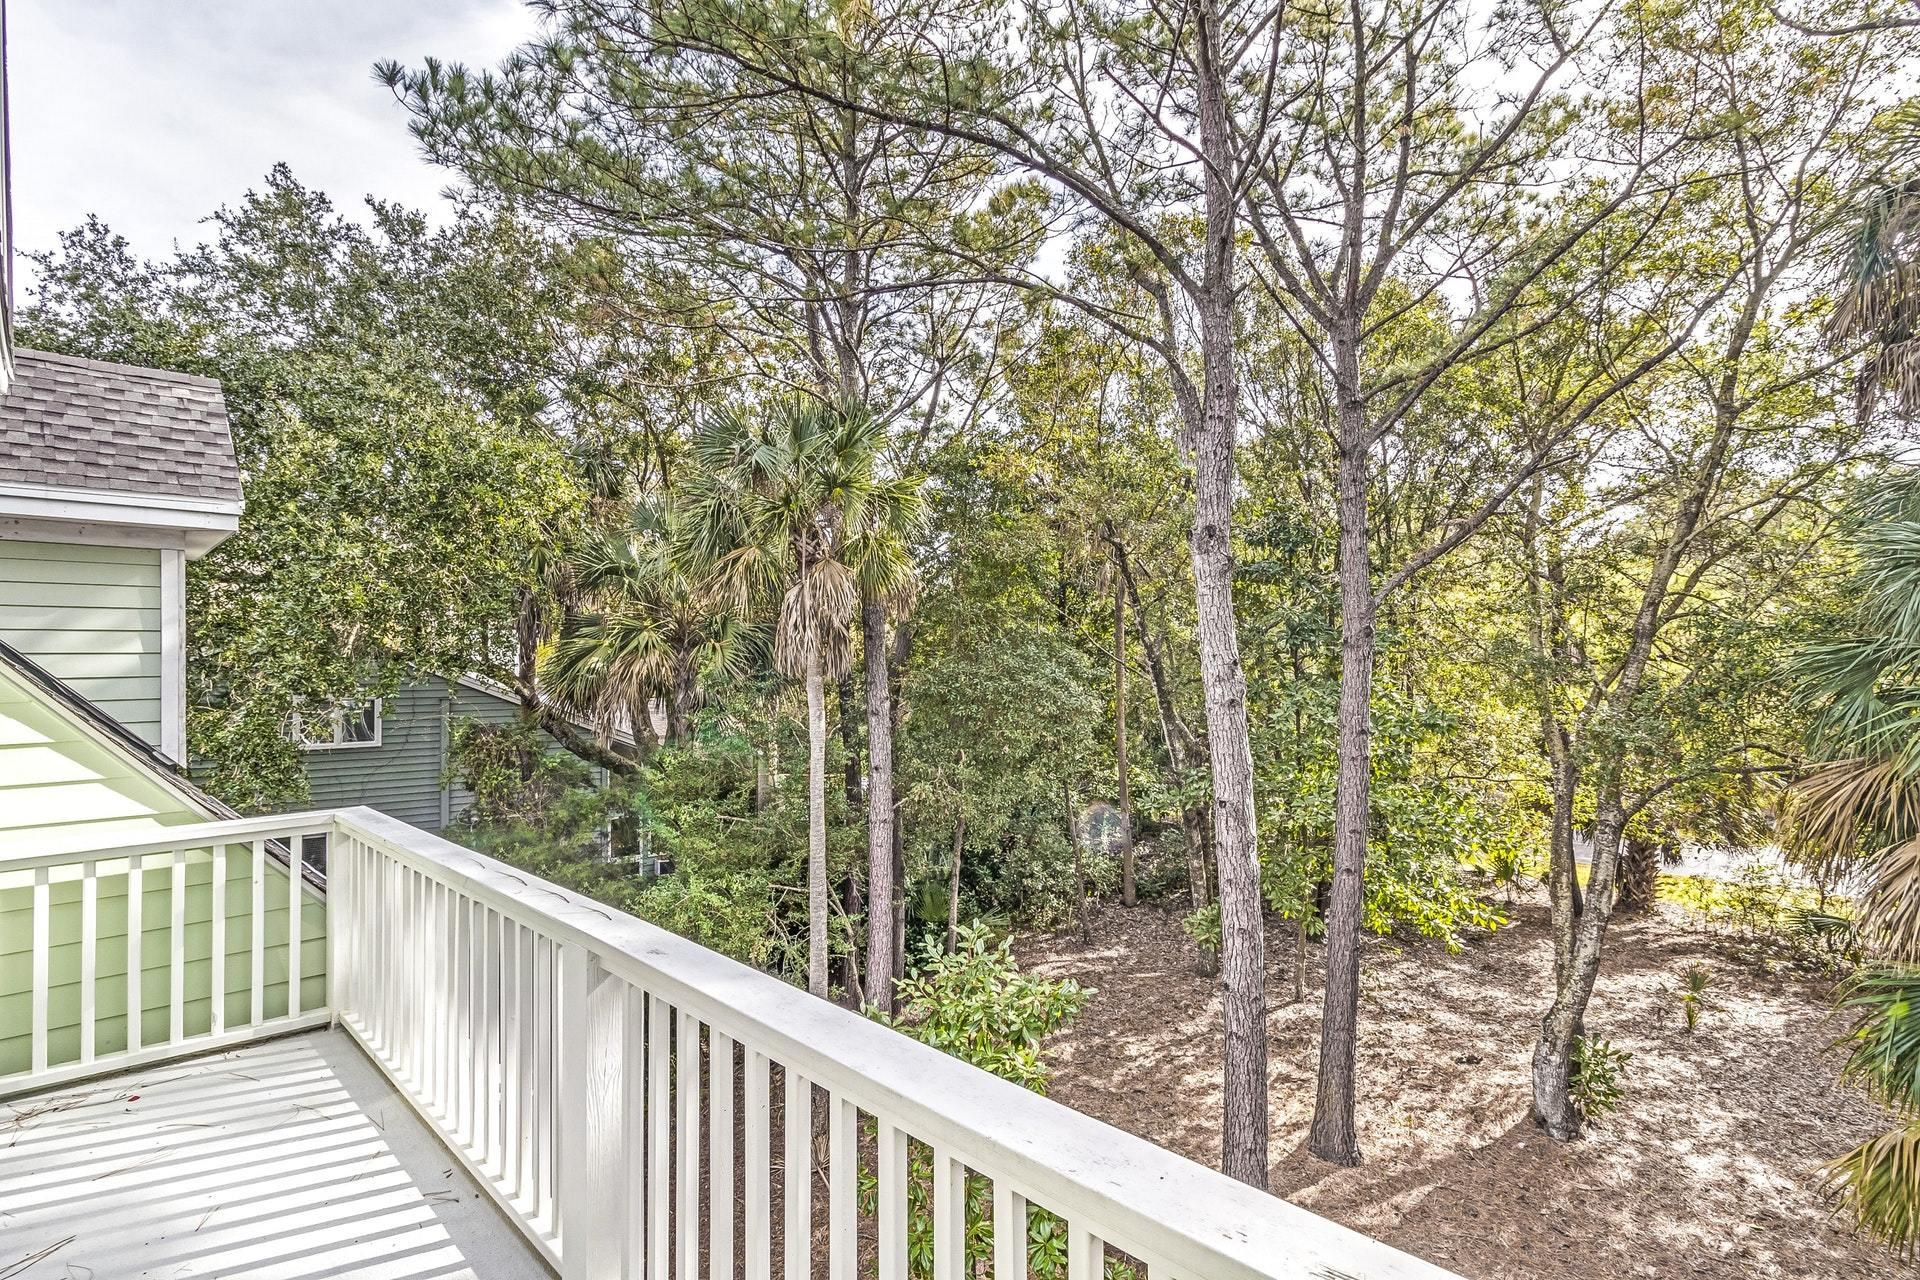 Wild Dunes Homes For Sale - 28 Edgewater Alley, Isle of Palms, SC - 4